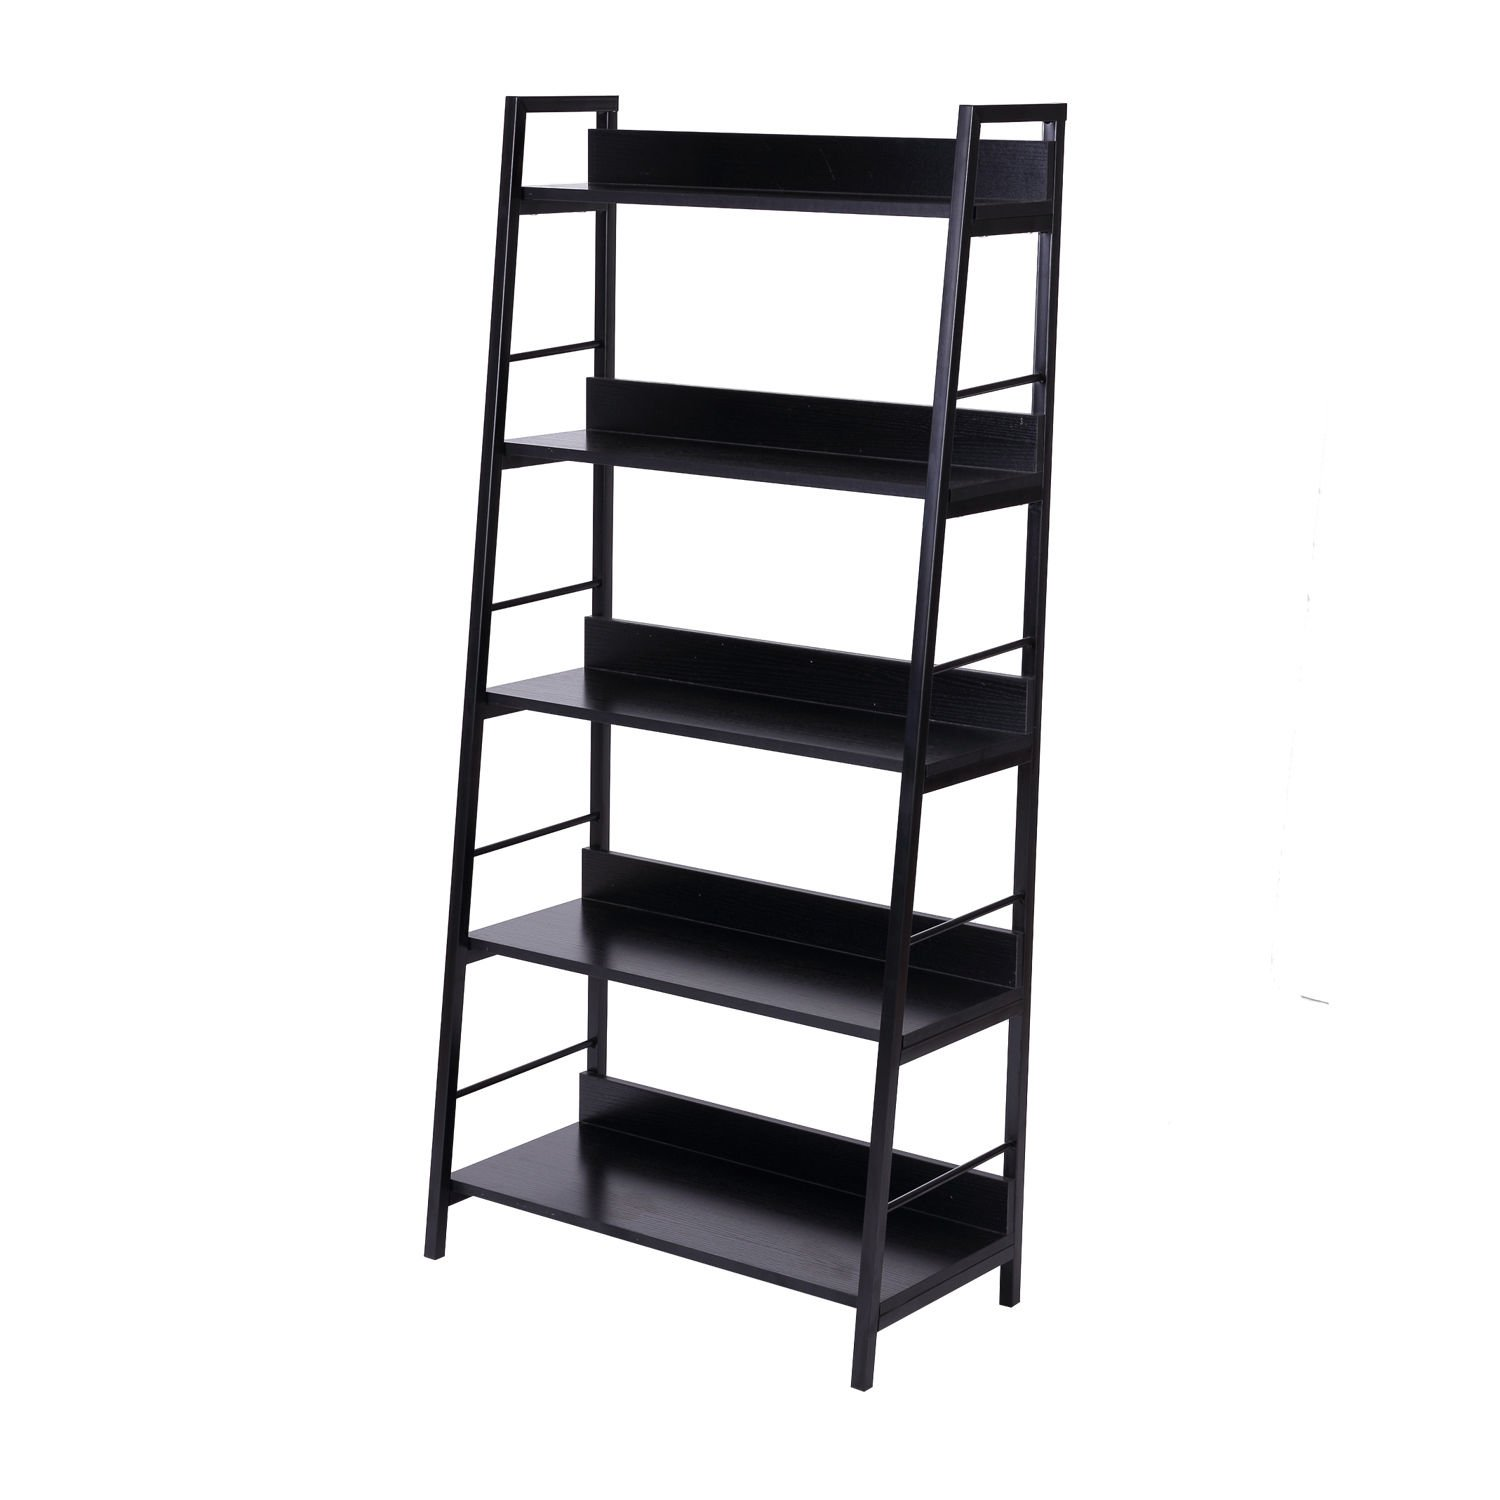 Wood Bookcase 5-Tier Wide Book Display Shelves Storage Home Furniture Black Eight24hours